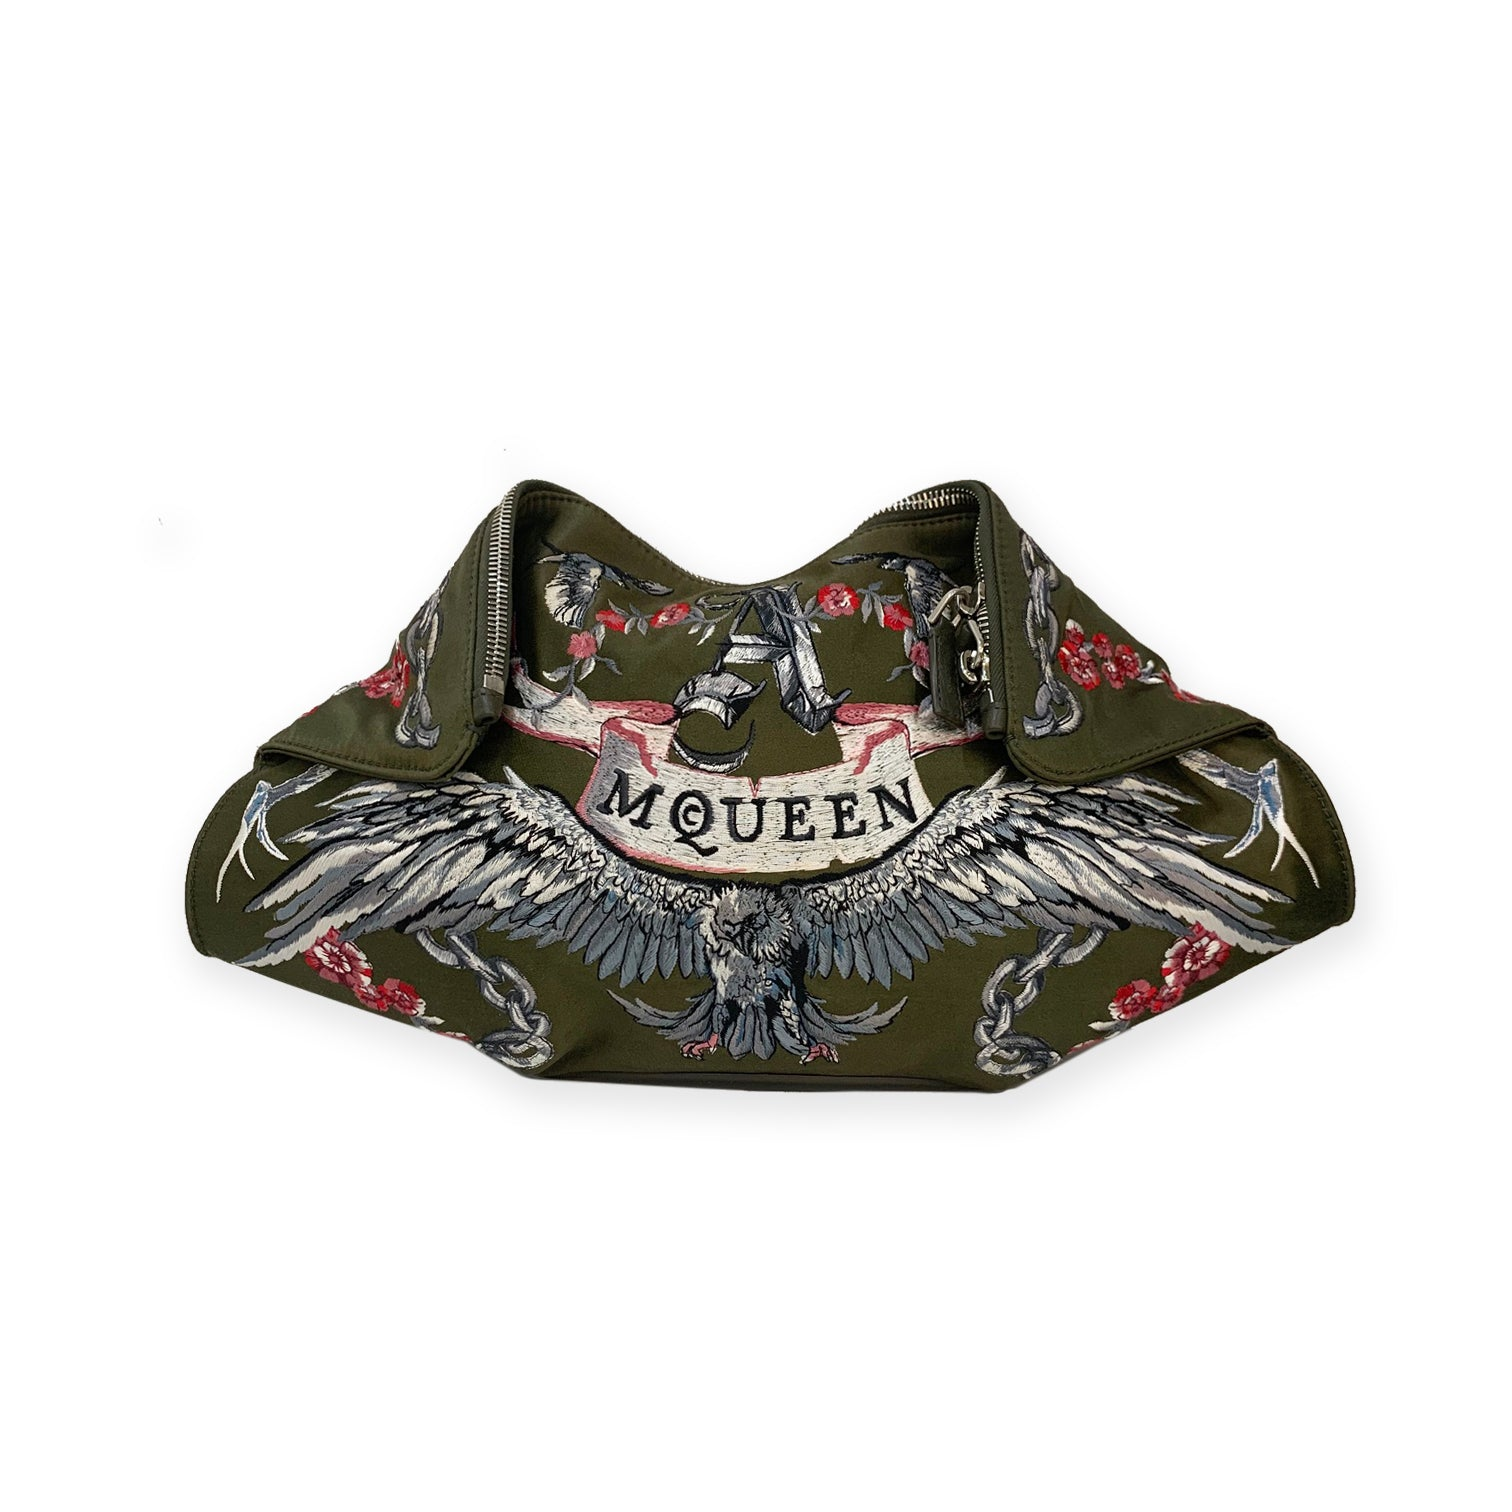 Alexander McQueen Olive Green Embroidery Clutch